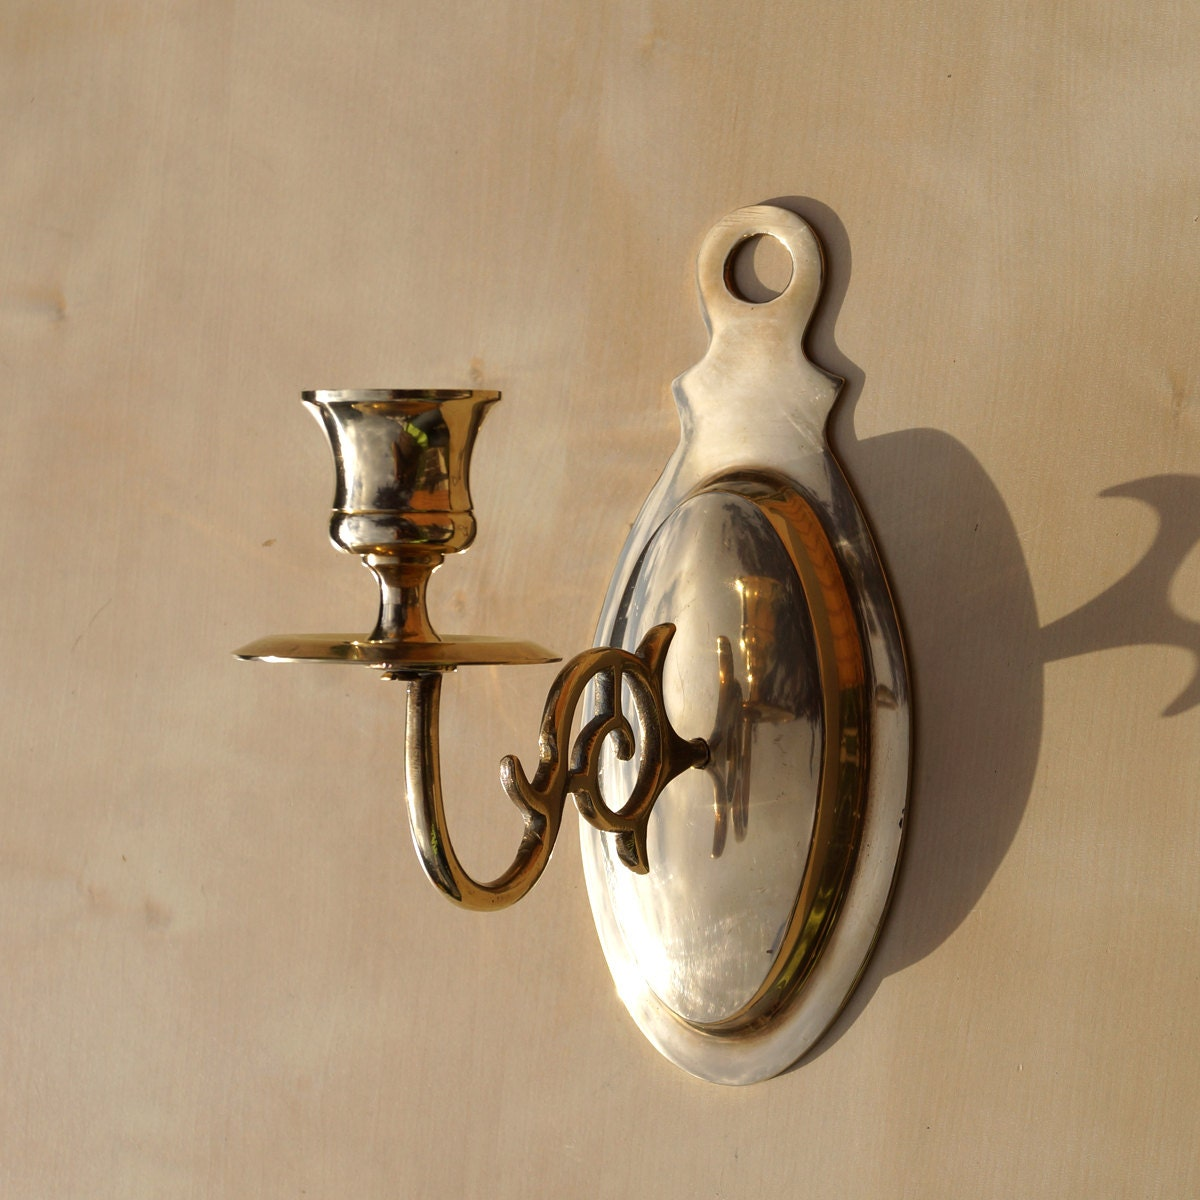 Brass Wall Candle Holder Wall Decor Table Deccor